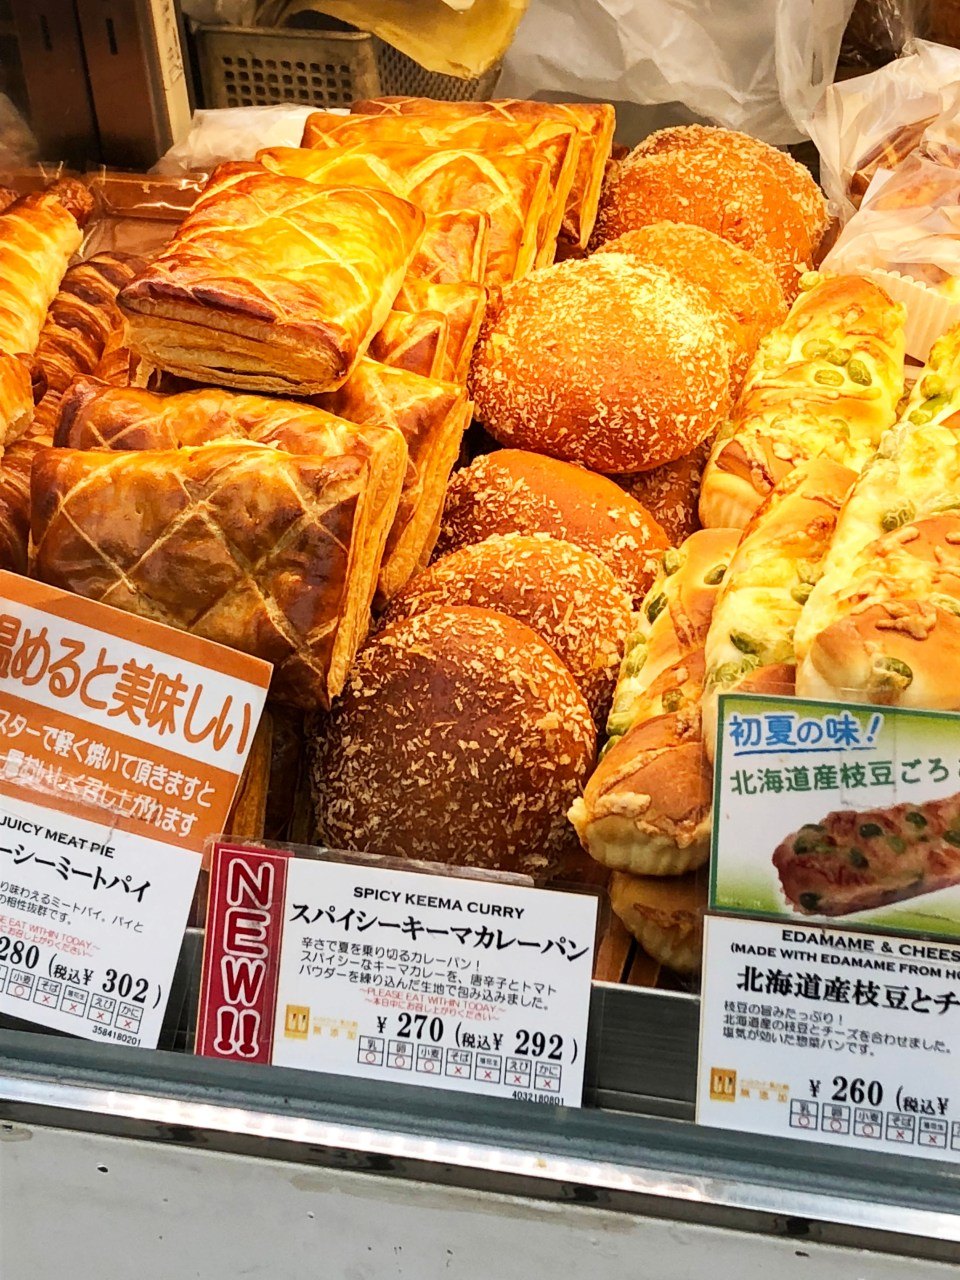 Shinjuku Station - food